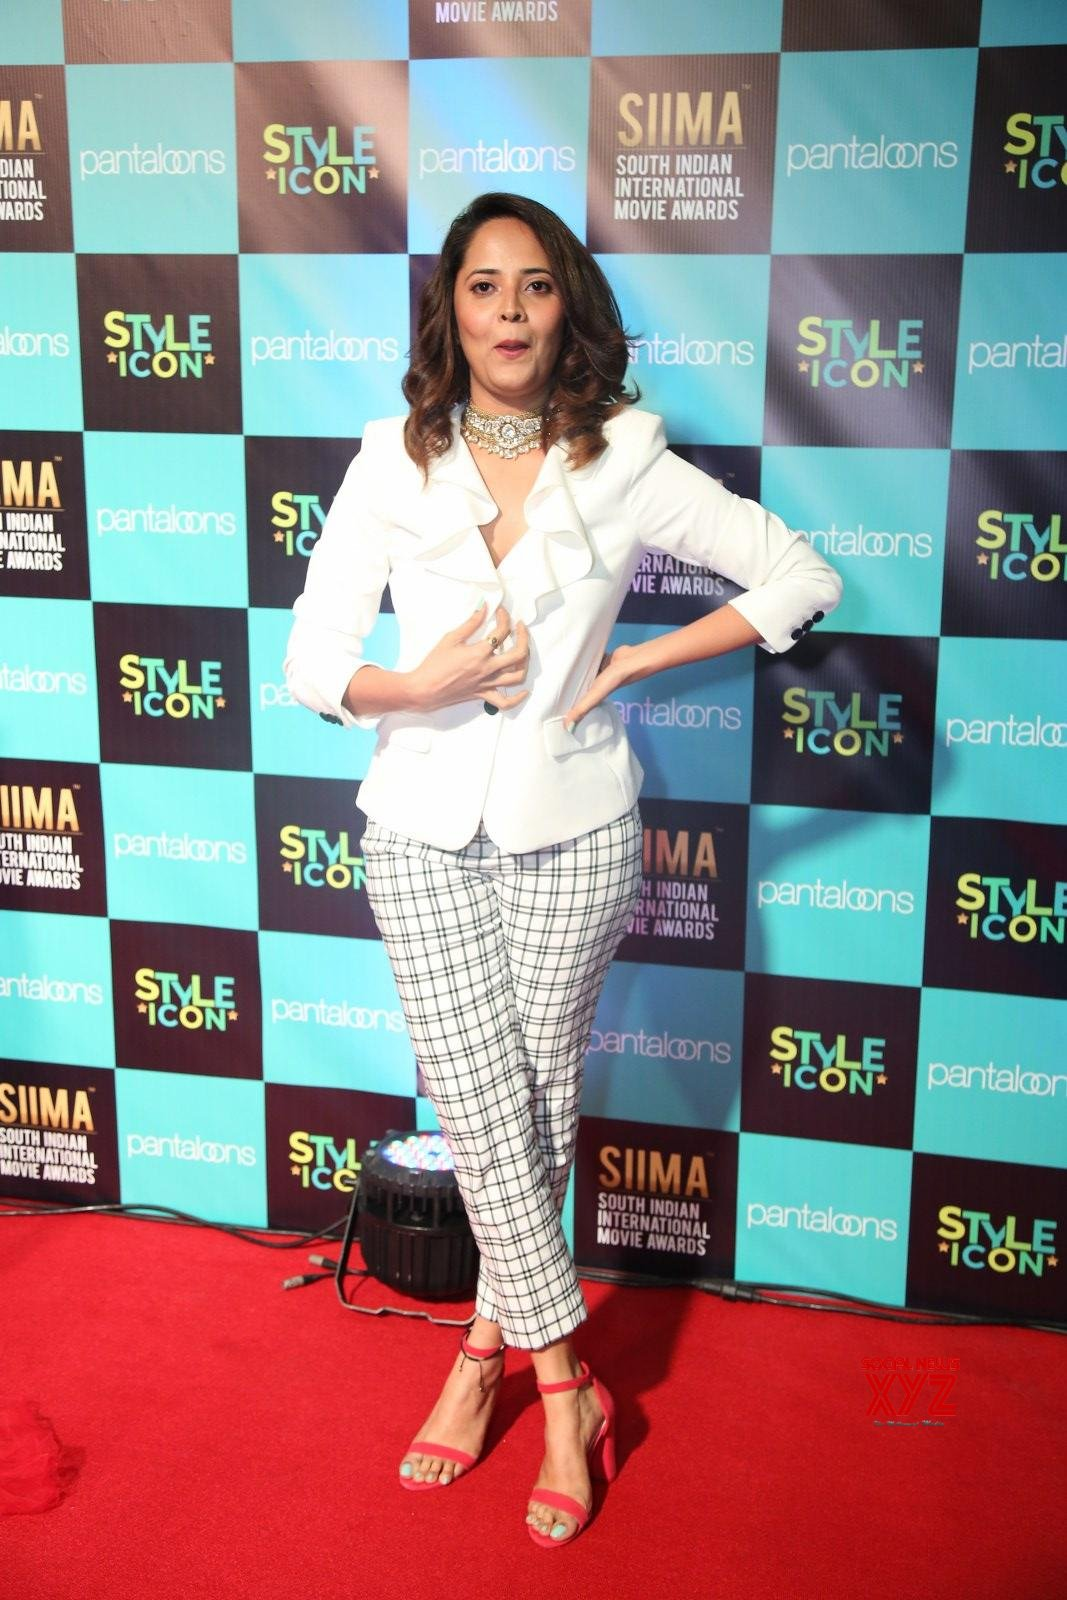 Celebs At SIIMA Awards 2019 Red Carpet In Doha Qatar Gallery Set 4